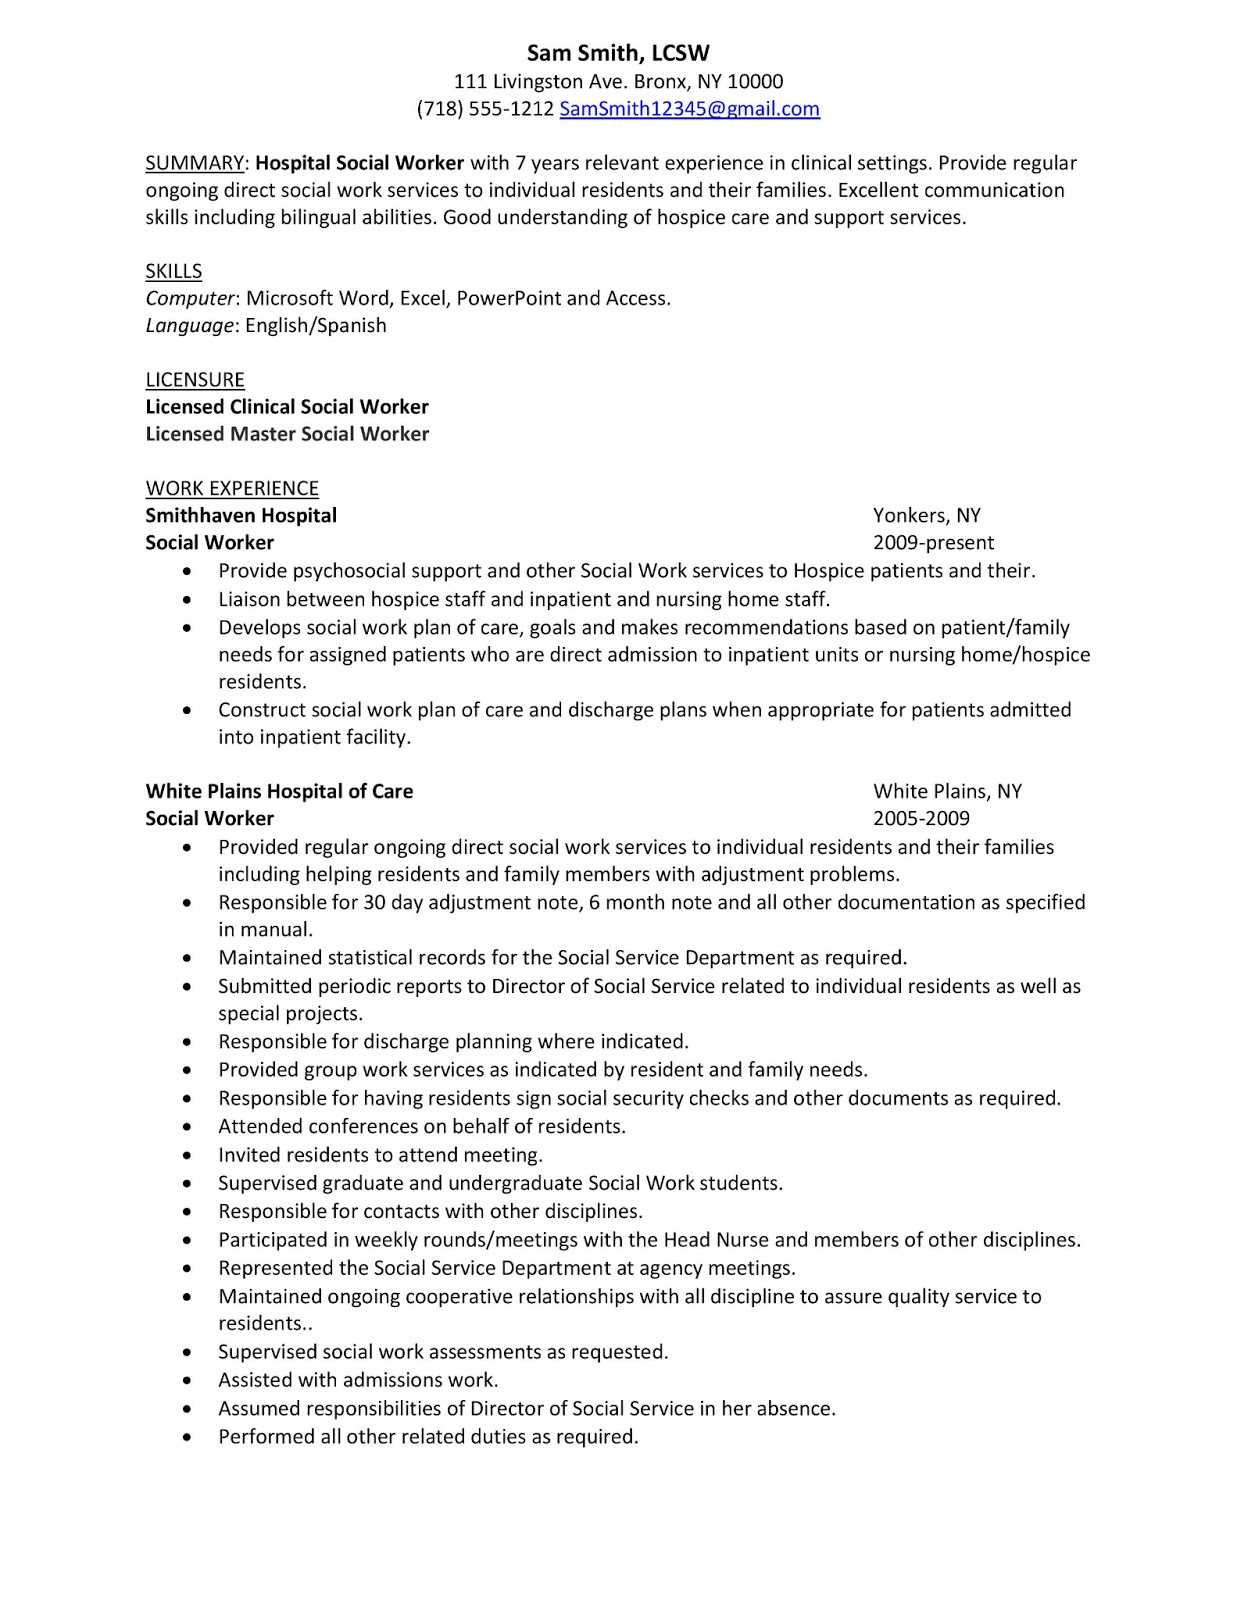 resume objective examples general accountant fresh accounting